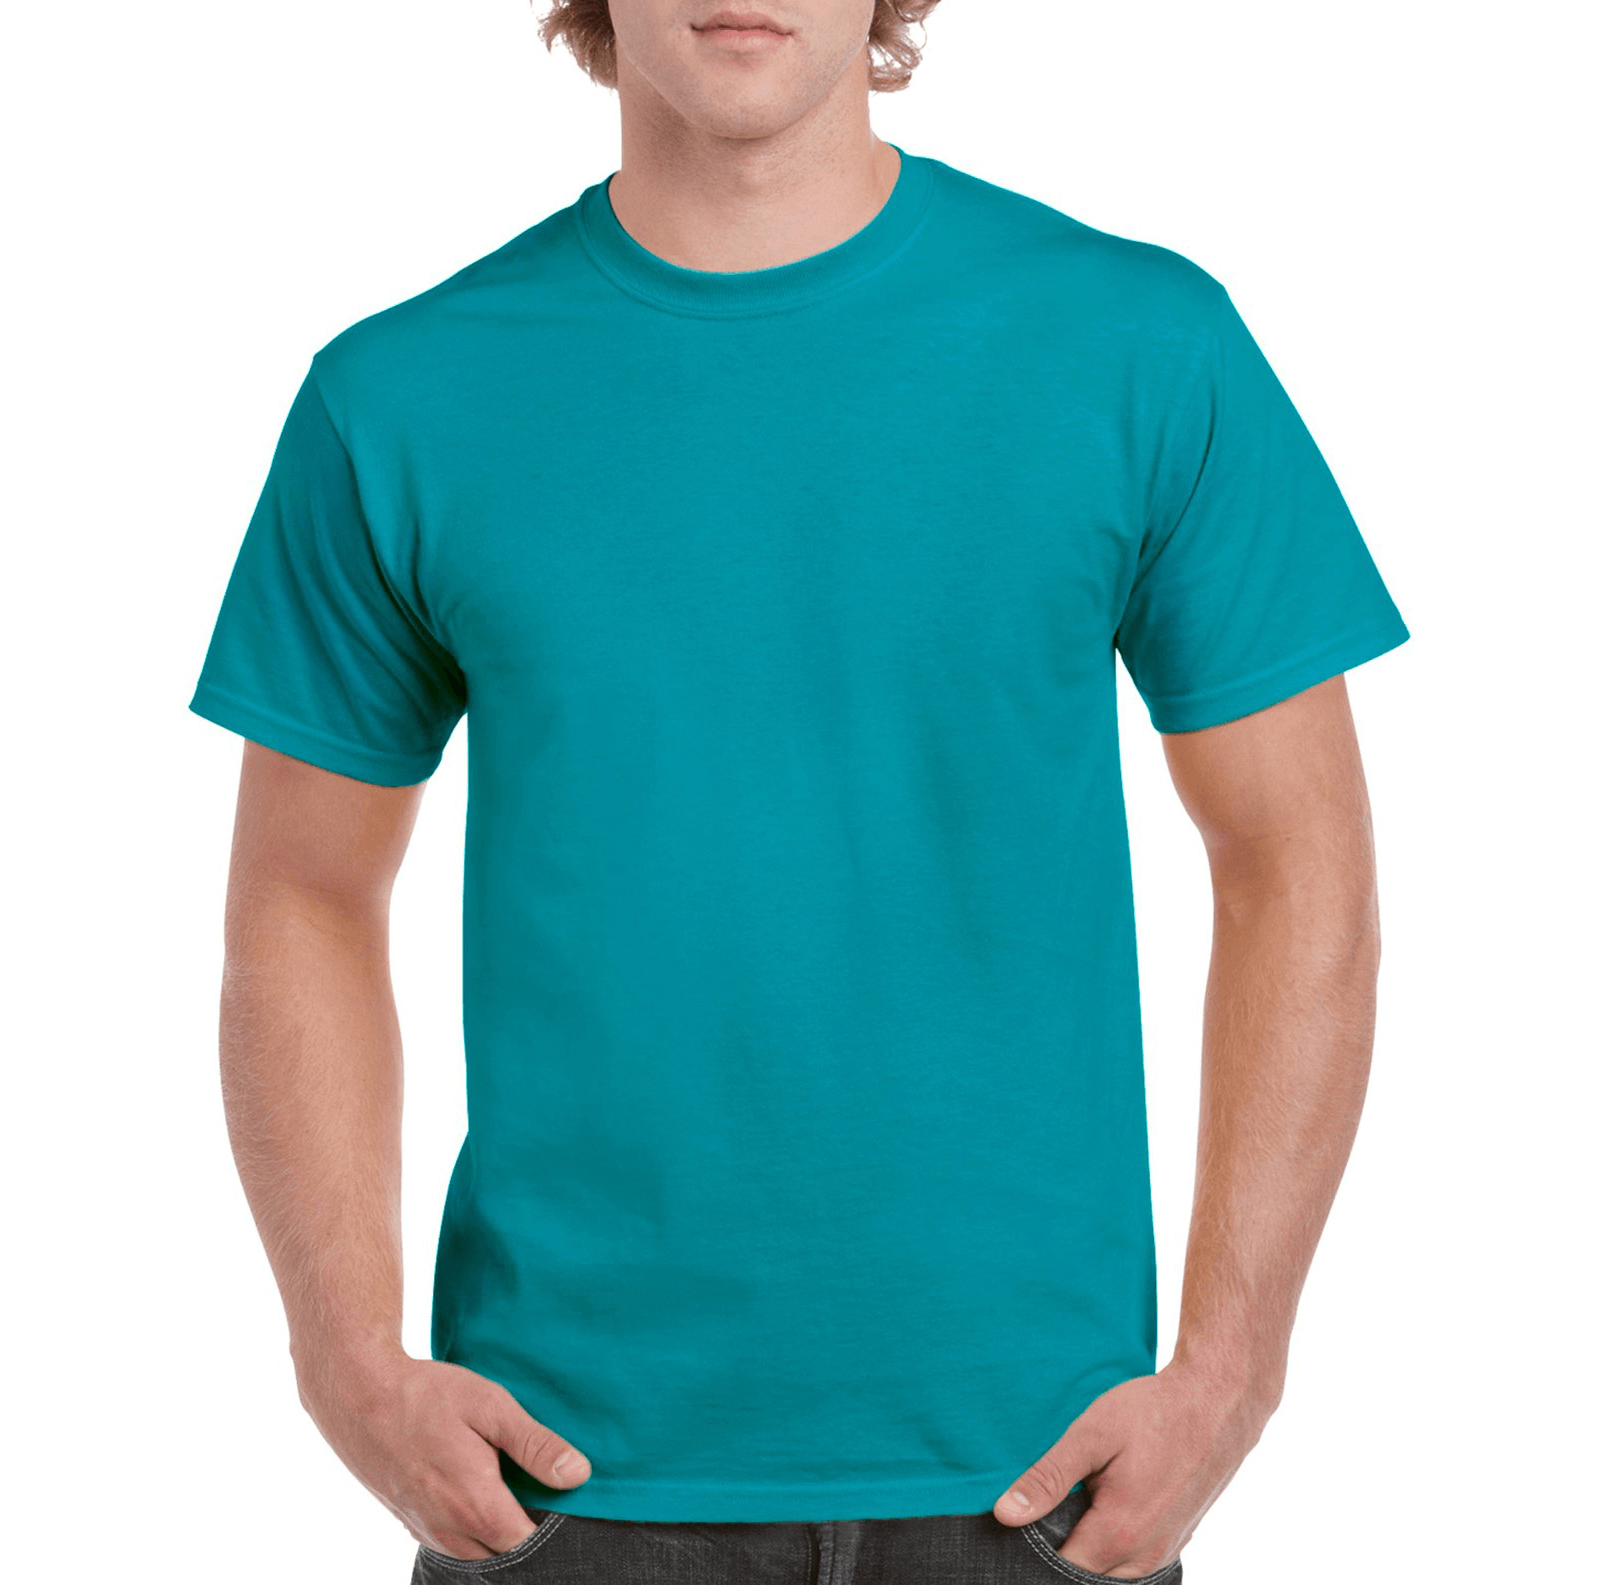 Shirts in bulk t shirt design collections for American apparel plain t shirts bulk